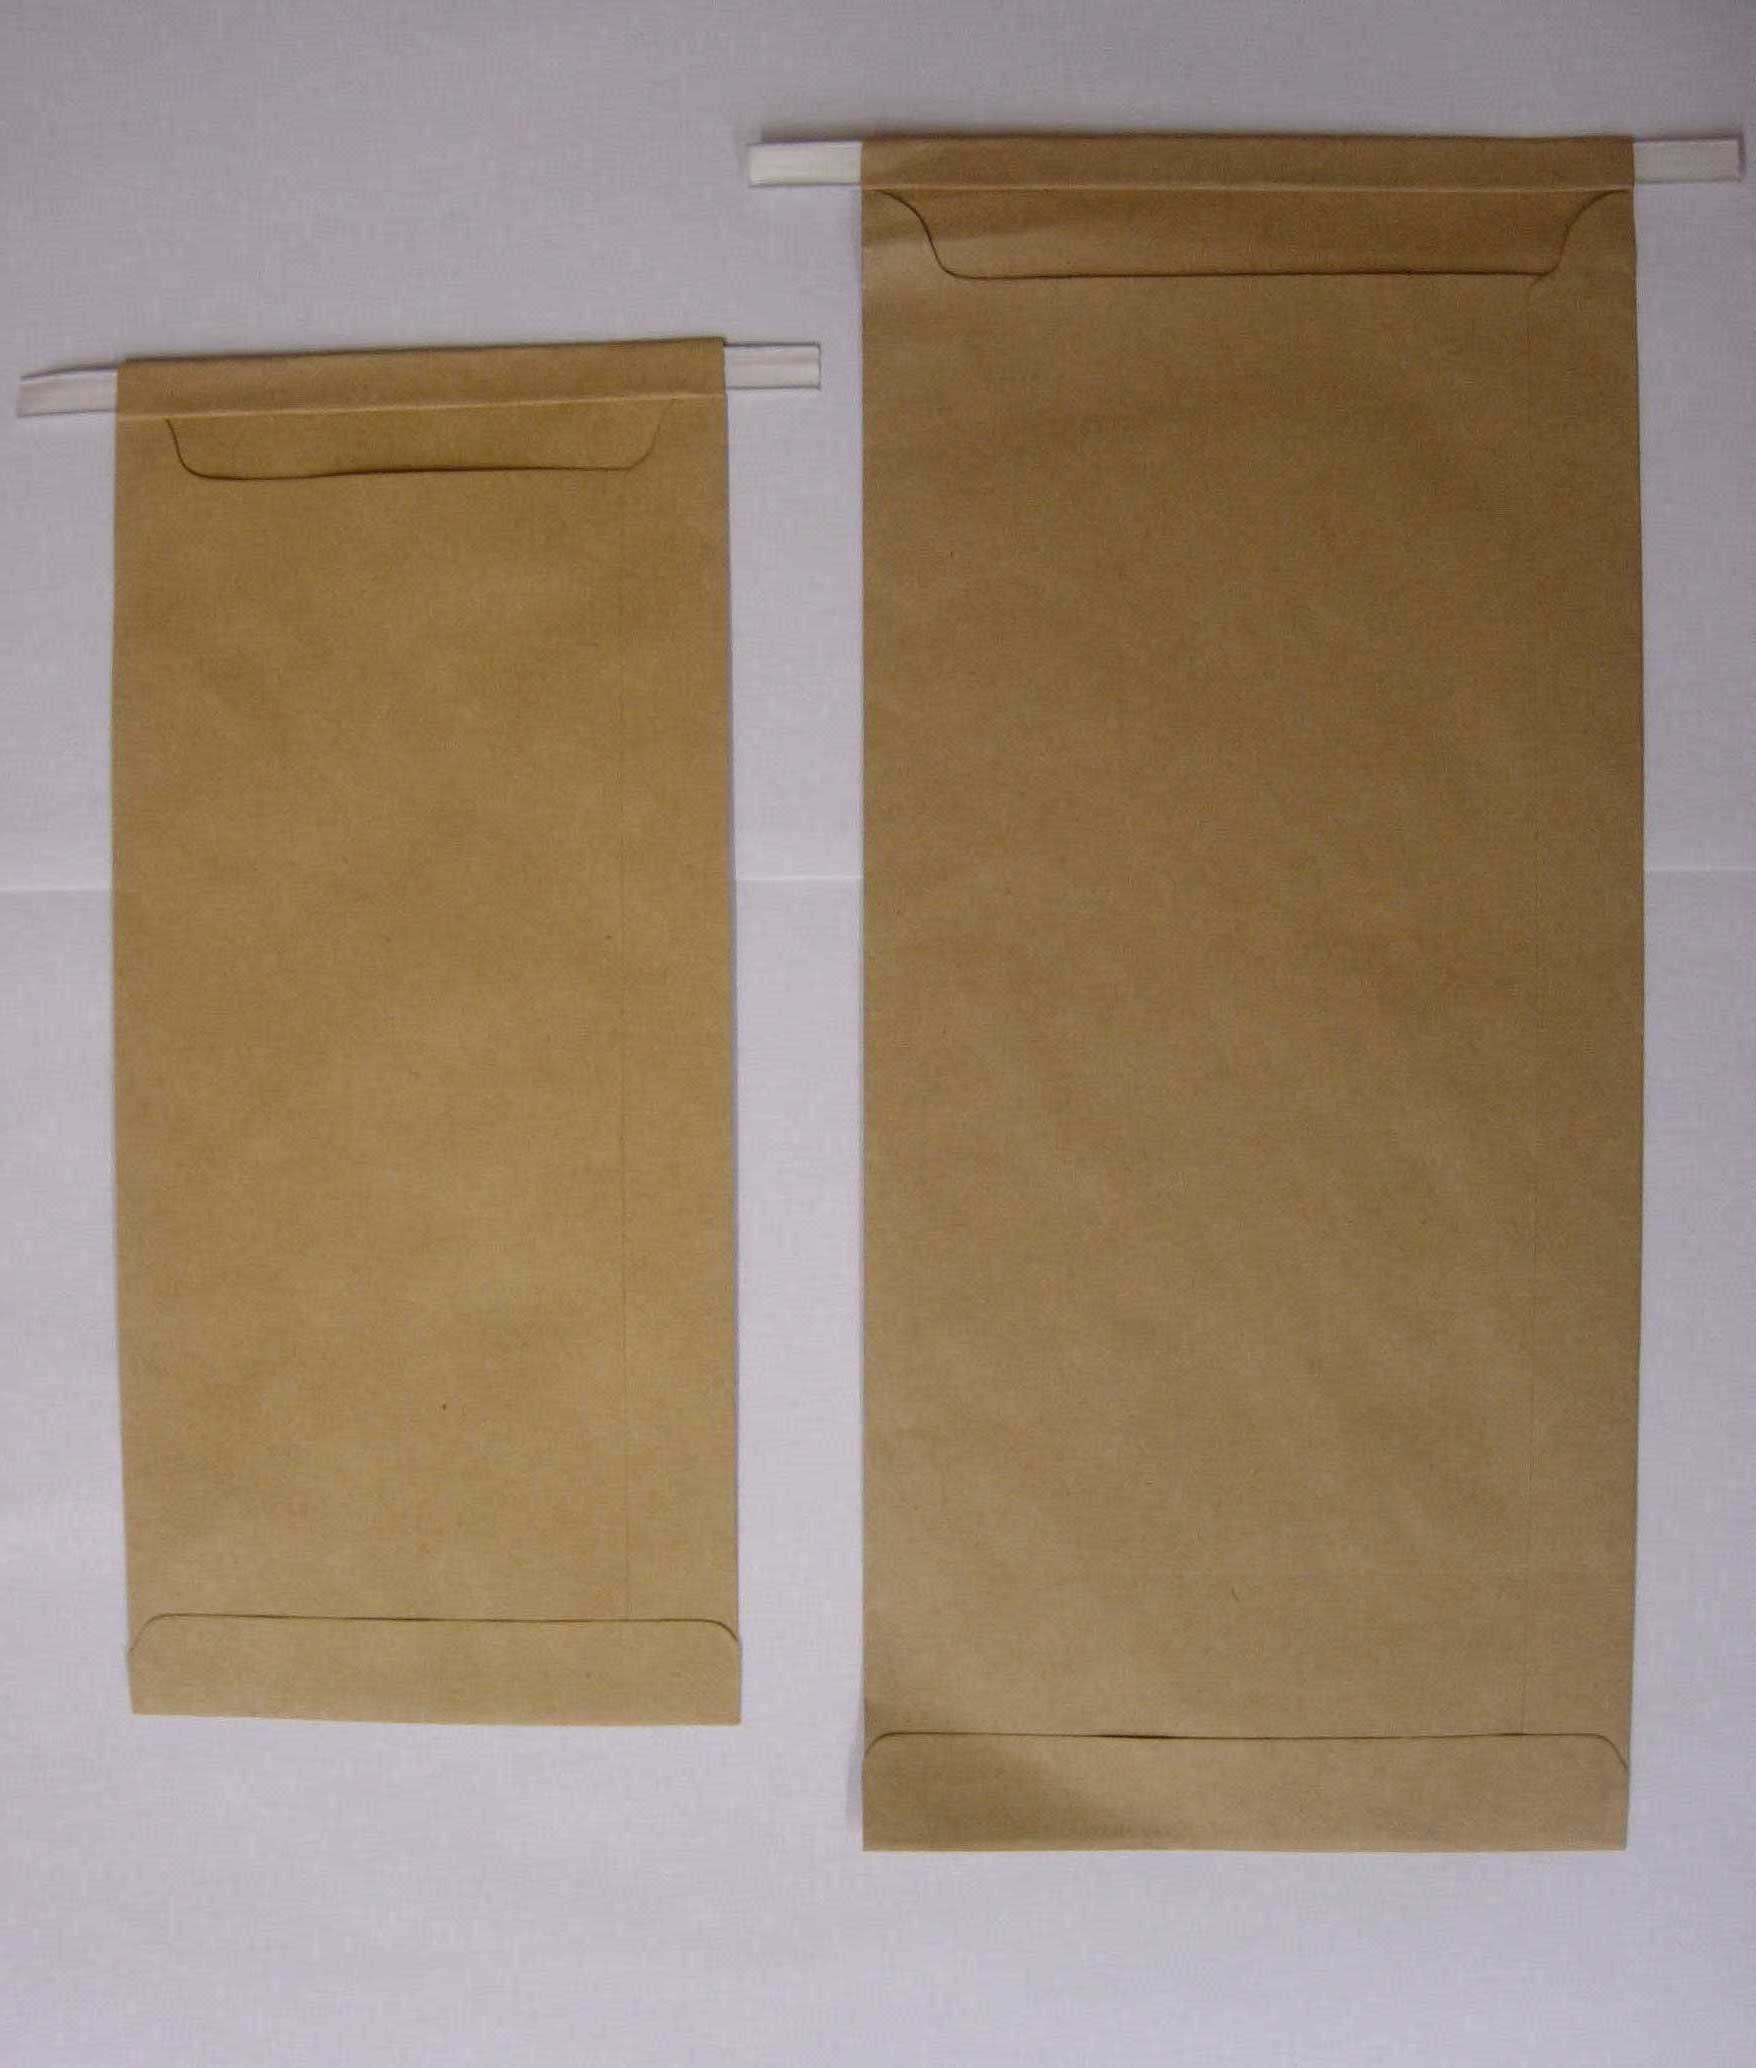 Figure 4. 4x8 inch and 5x10 inch Kraft bags.